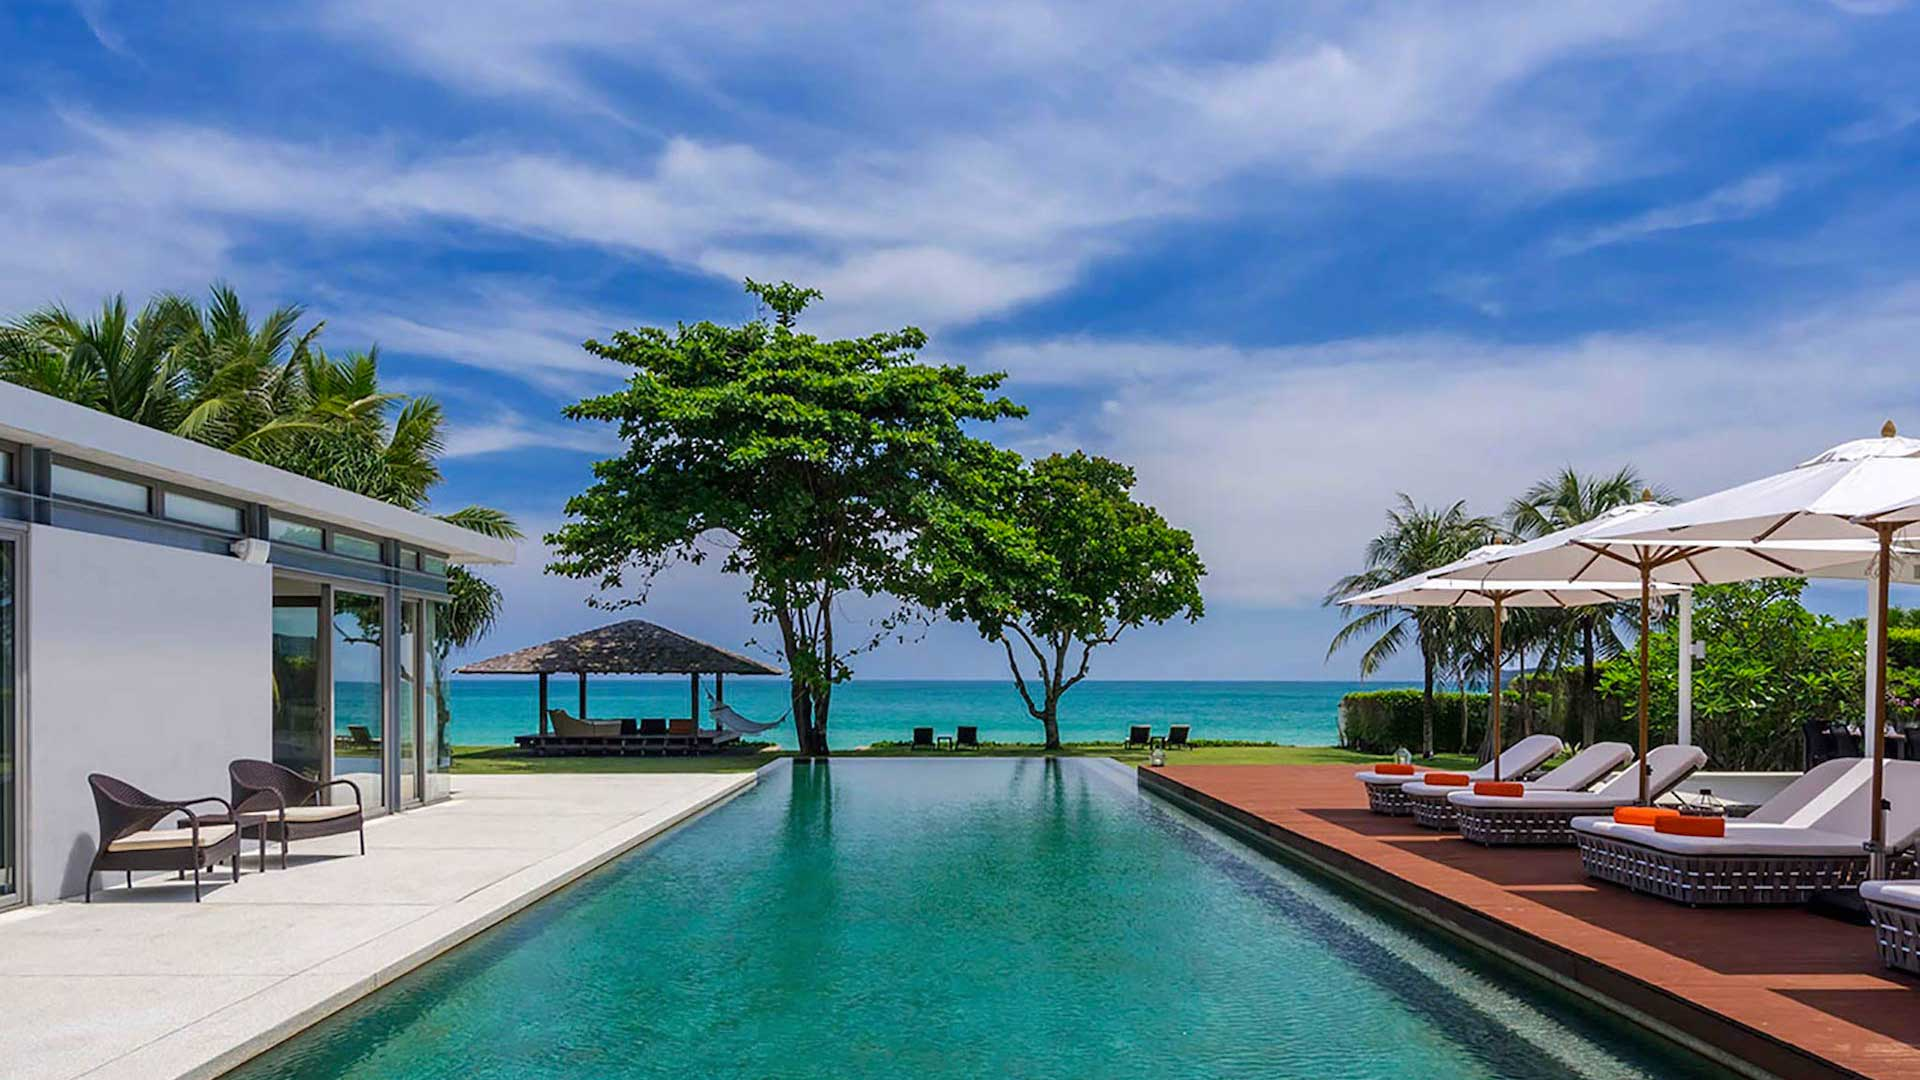 Villa Sava Beach Villas - Cielo, Rental in Phuket